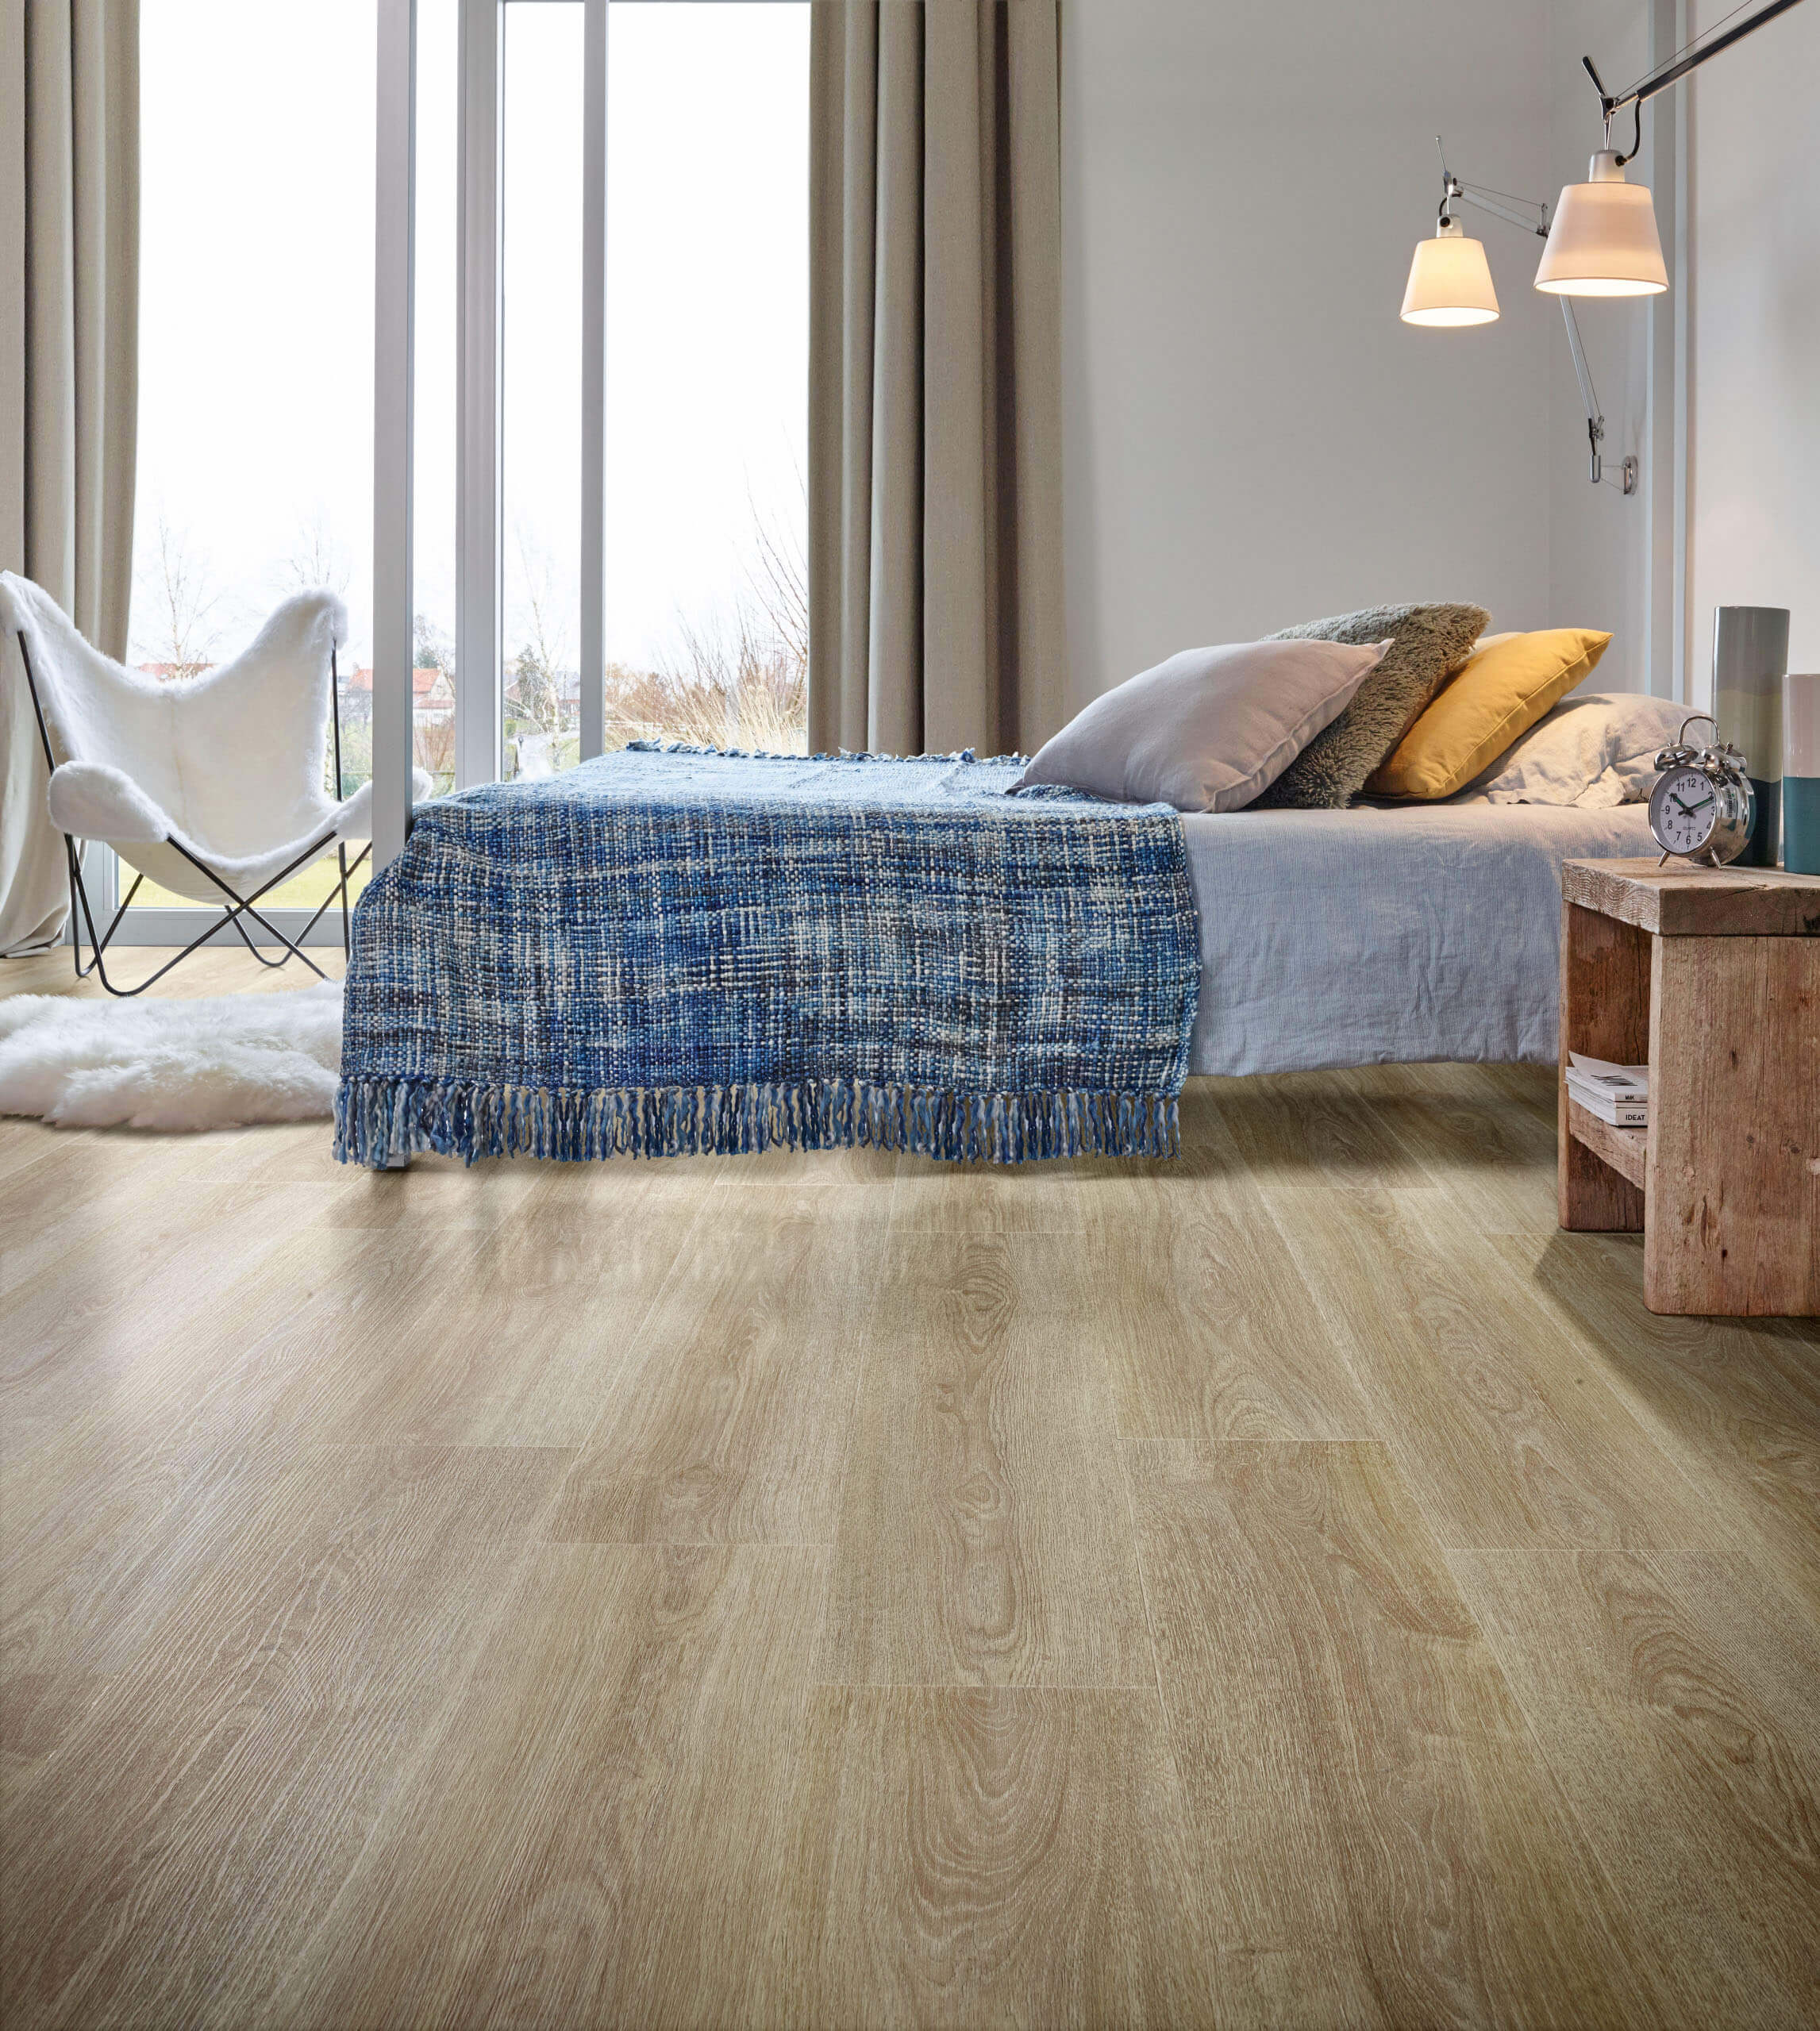 24 Modern Bedroom Vinyl Flooring Ideas Architectures Ideas